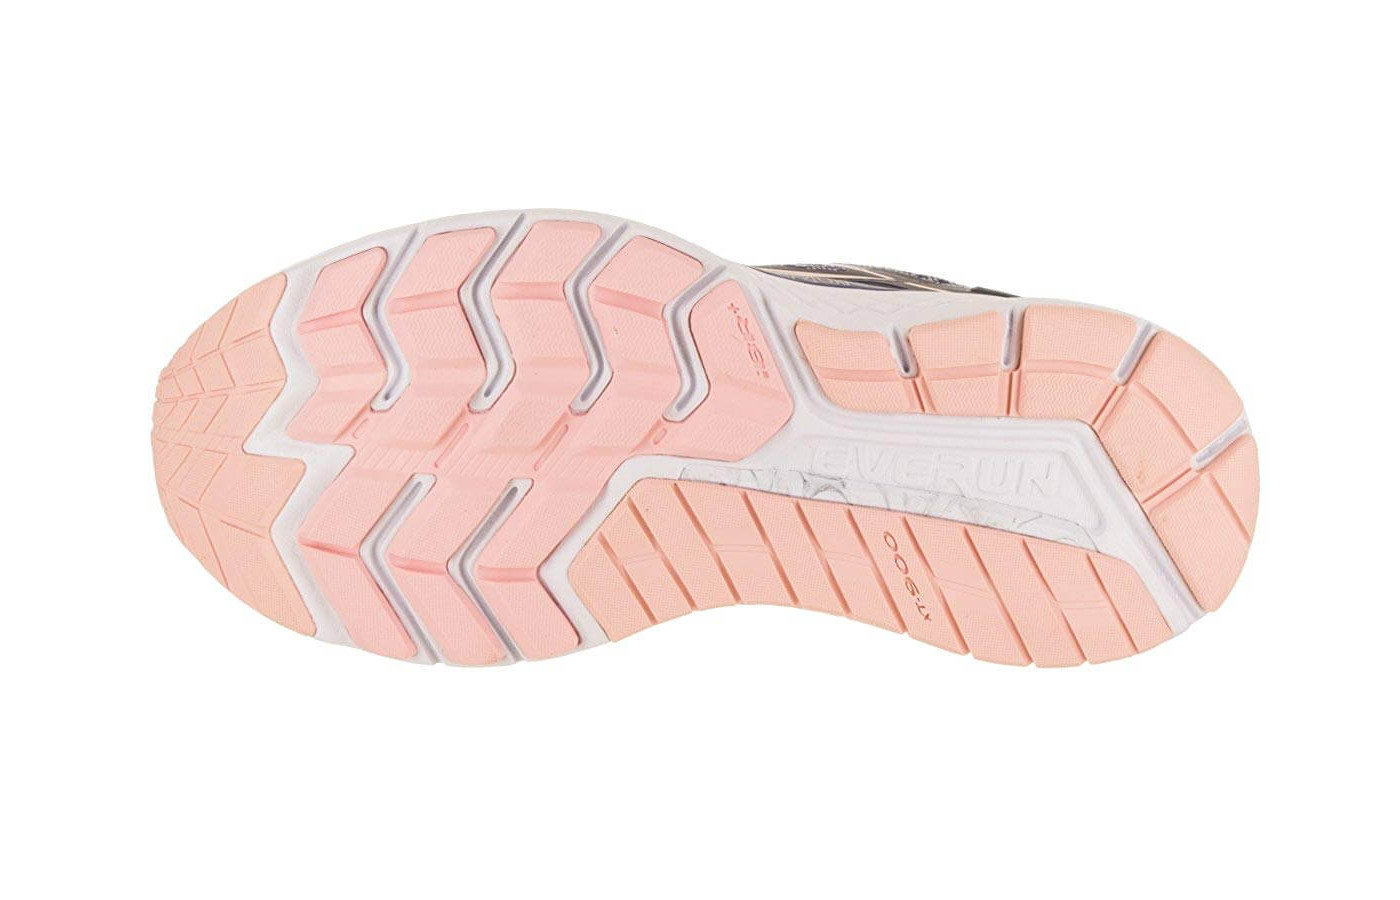 The Omni ISO's outsole is made up of IBR+ technology and  XT-900.